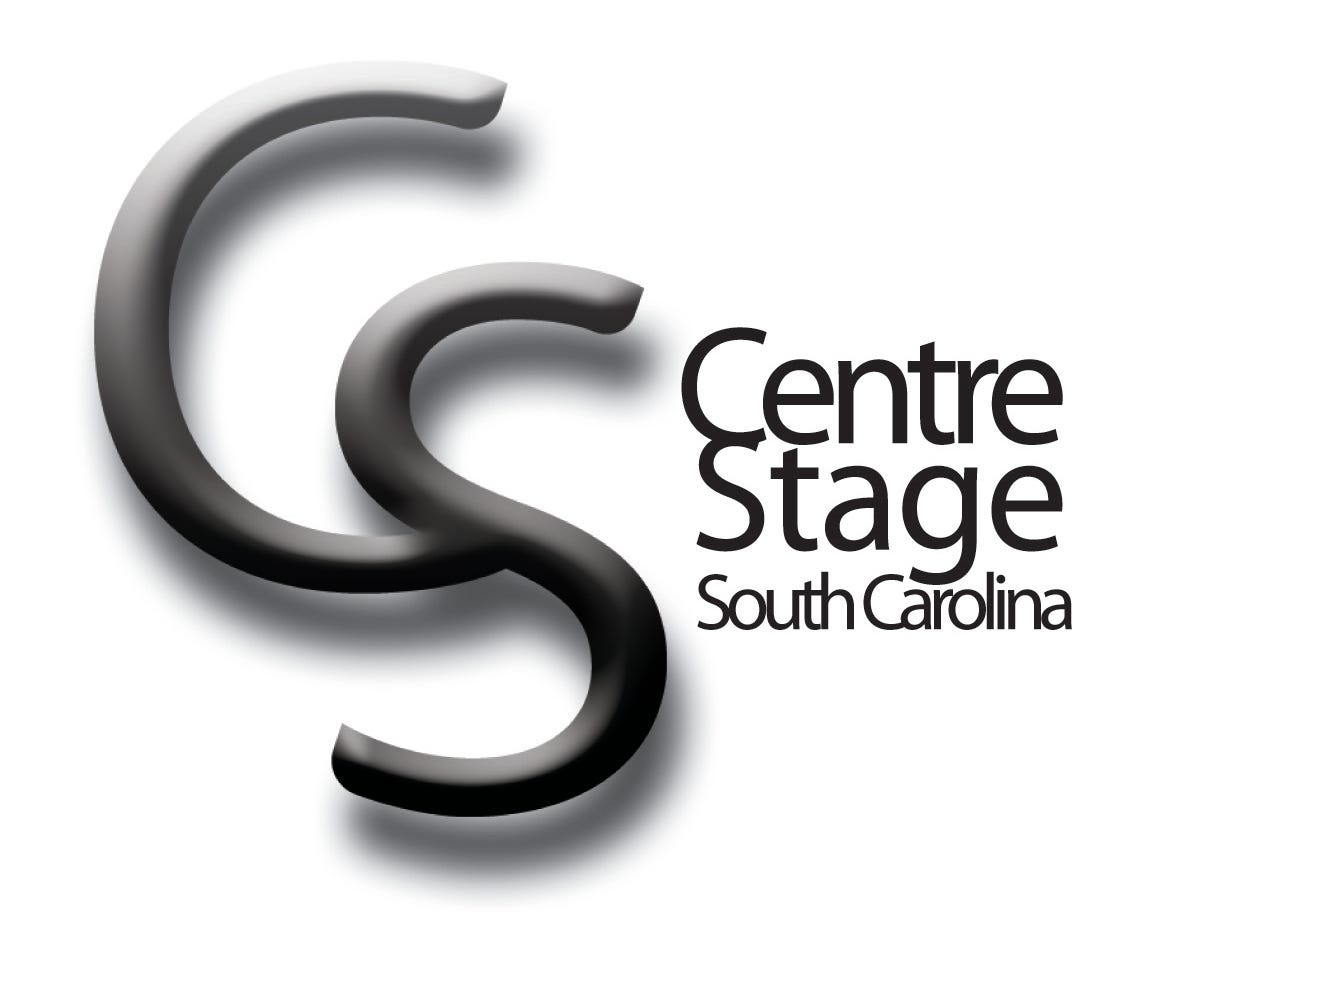 Insiders, save $5.00 on your Centre Stage tickets!